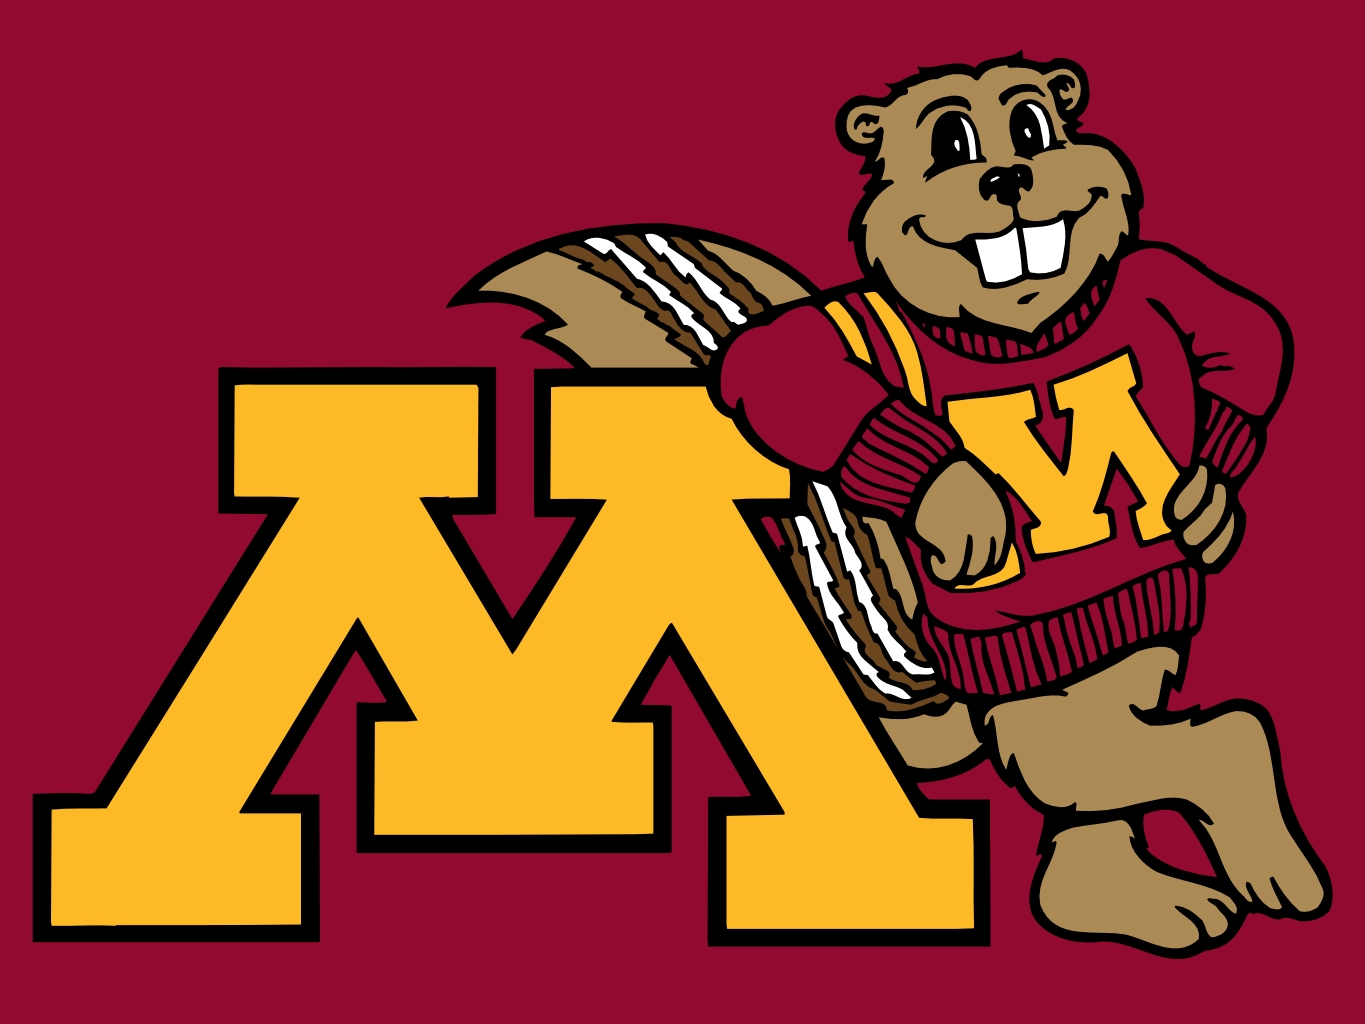 1000+ images about Minnesota Golden Gophers on Pinterest.